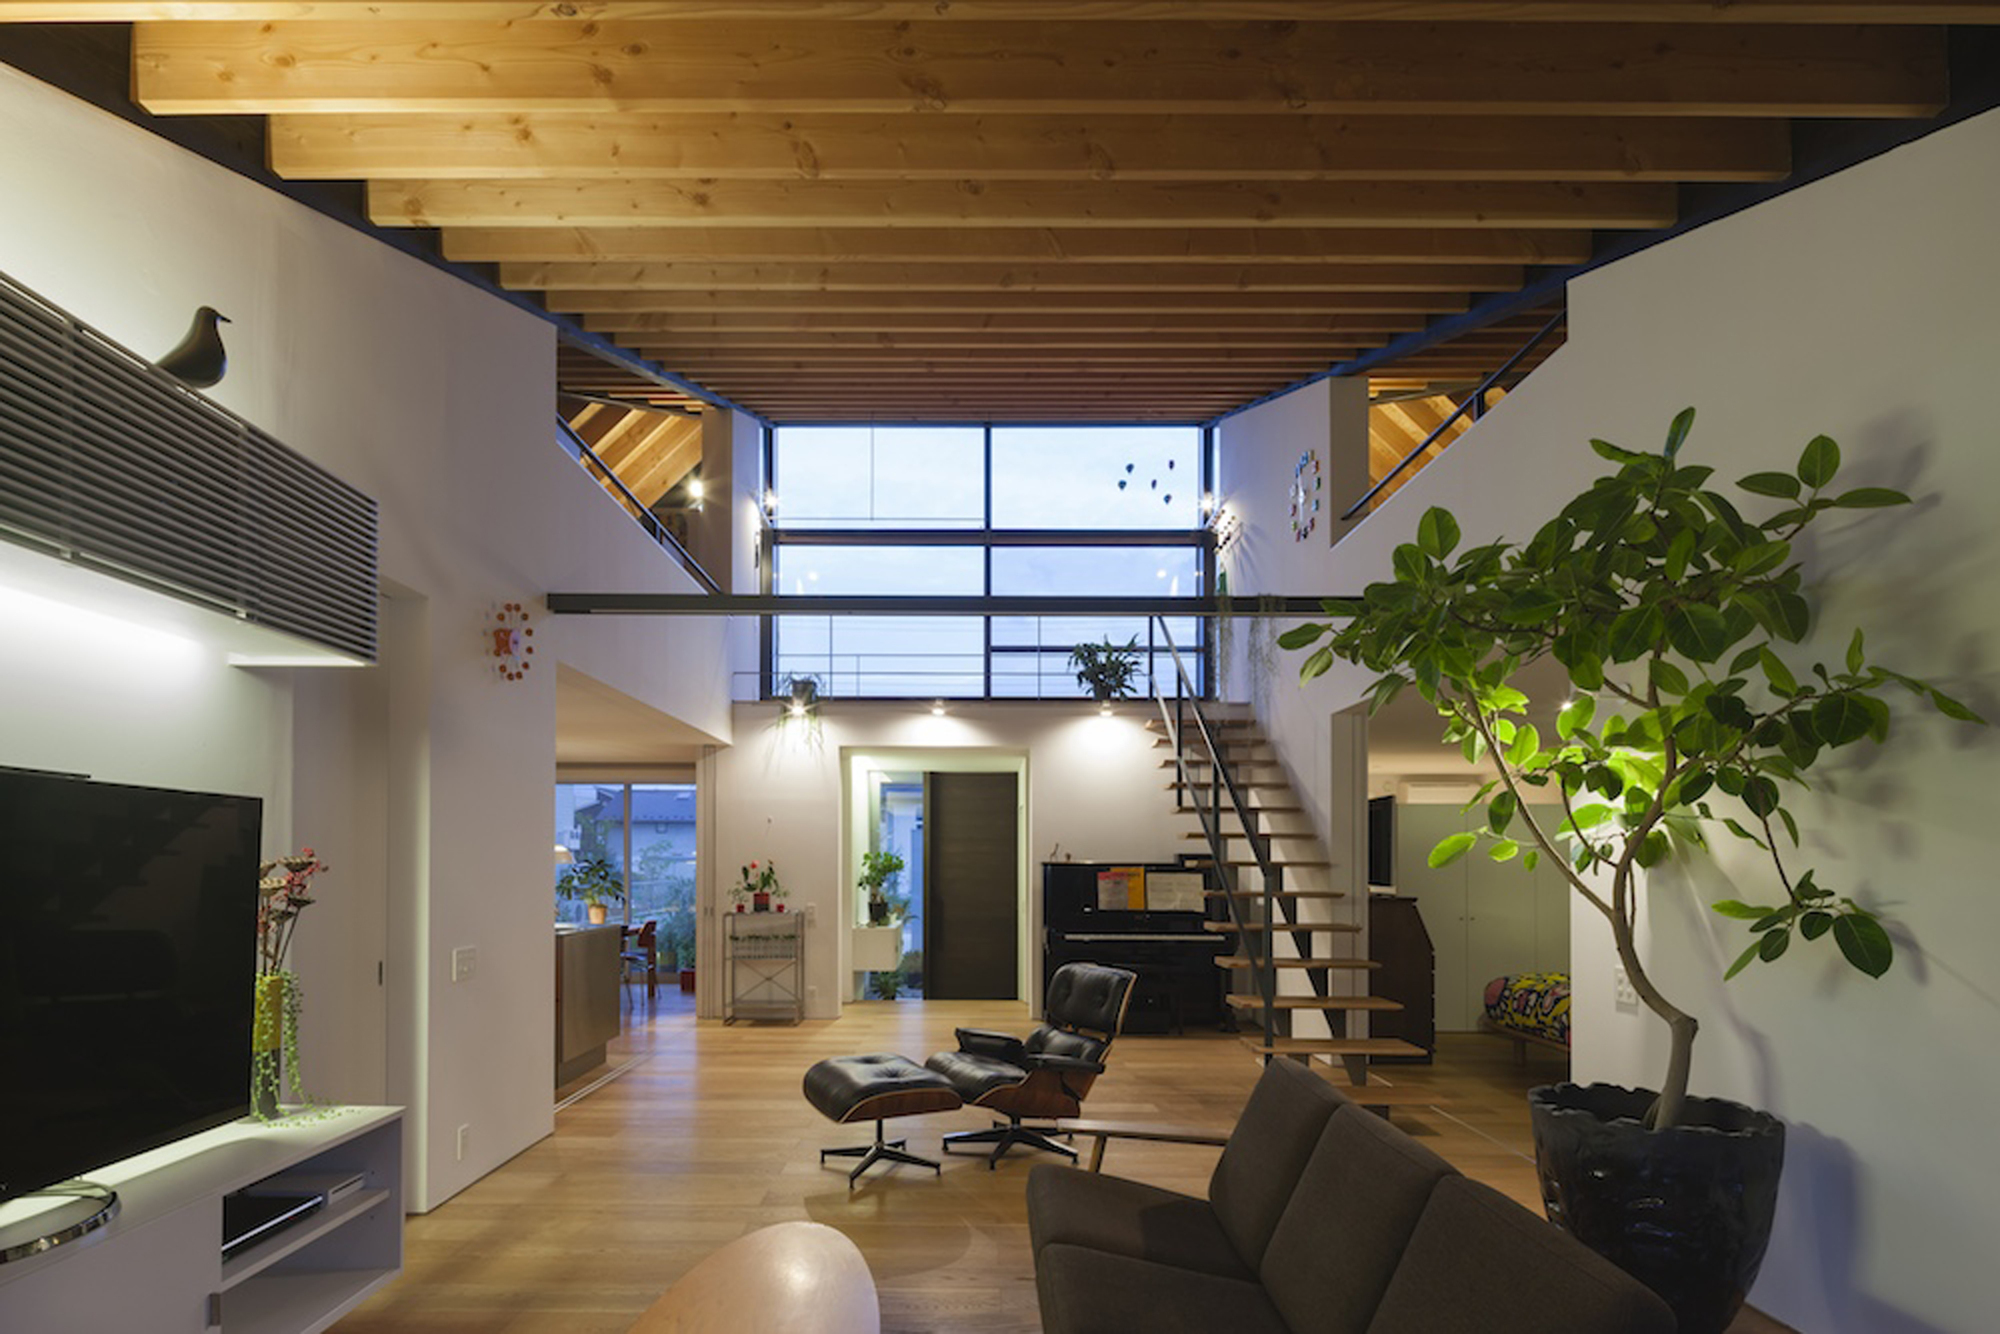 52eb1efae8e44e981a0000a4_house-with-a-large-hipped-roof-naoi-architecture-design-office_housewithlhr_22